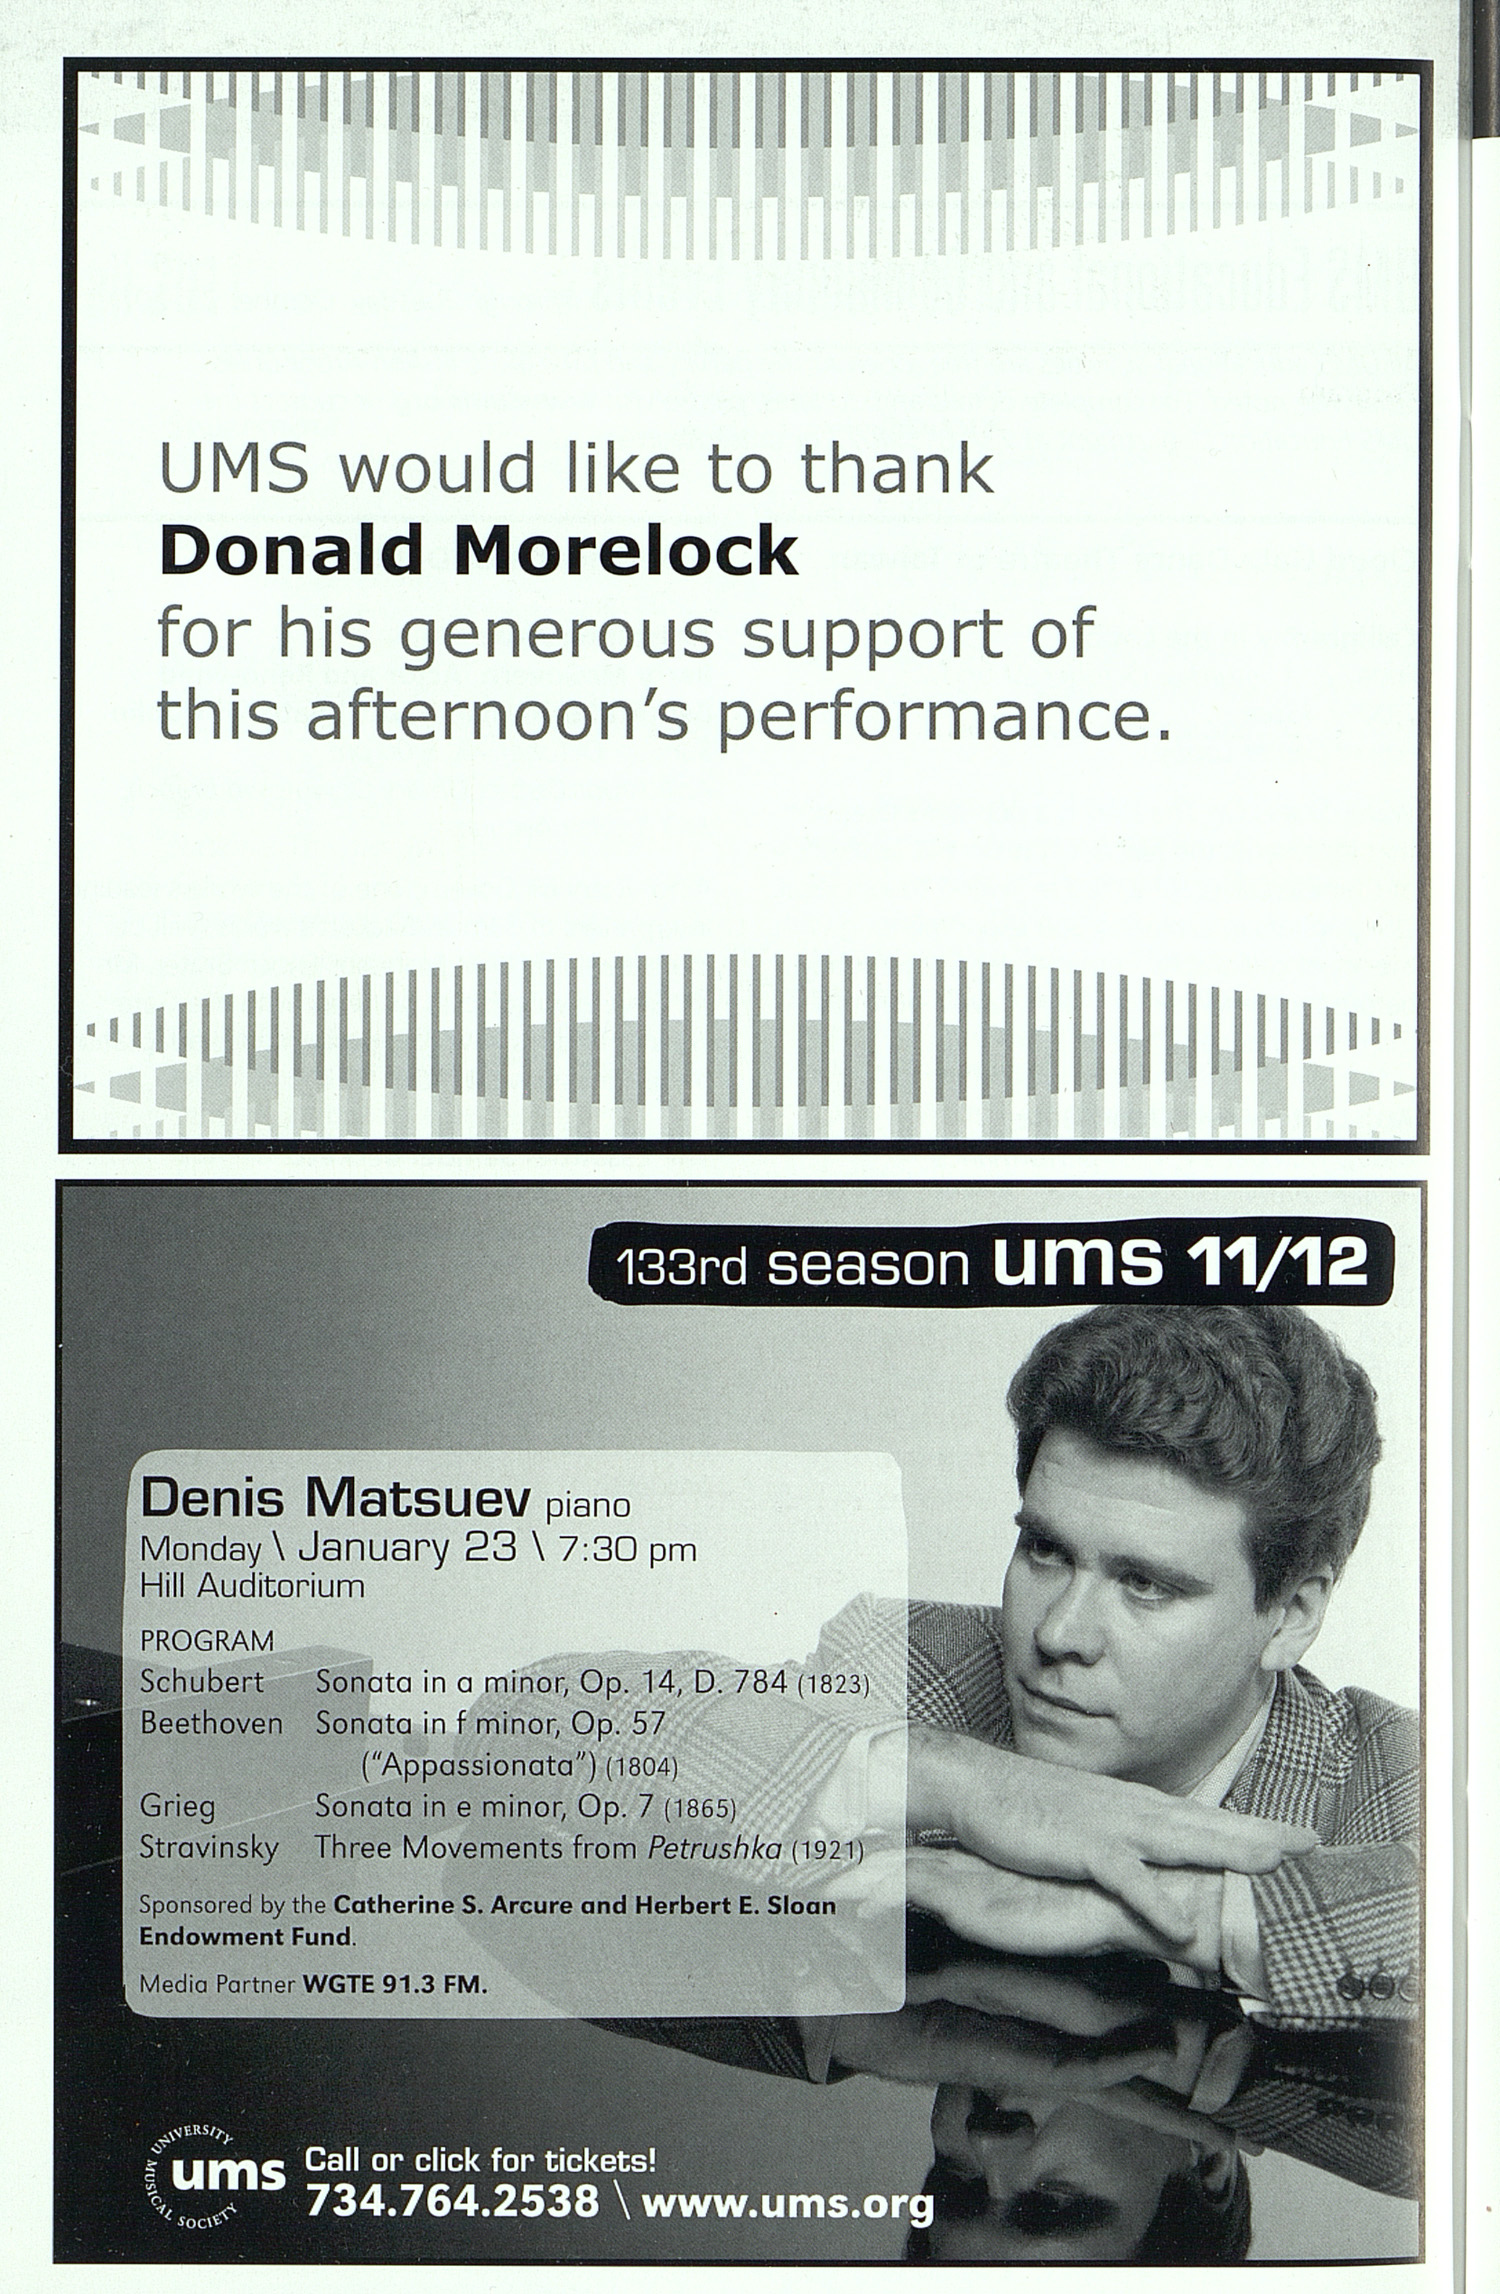 UMS Concert Program, Sunday Oct. 09 To 22: University Musical Society: Fall 2011 - Sunday Oct. 09 To 22 --  image